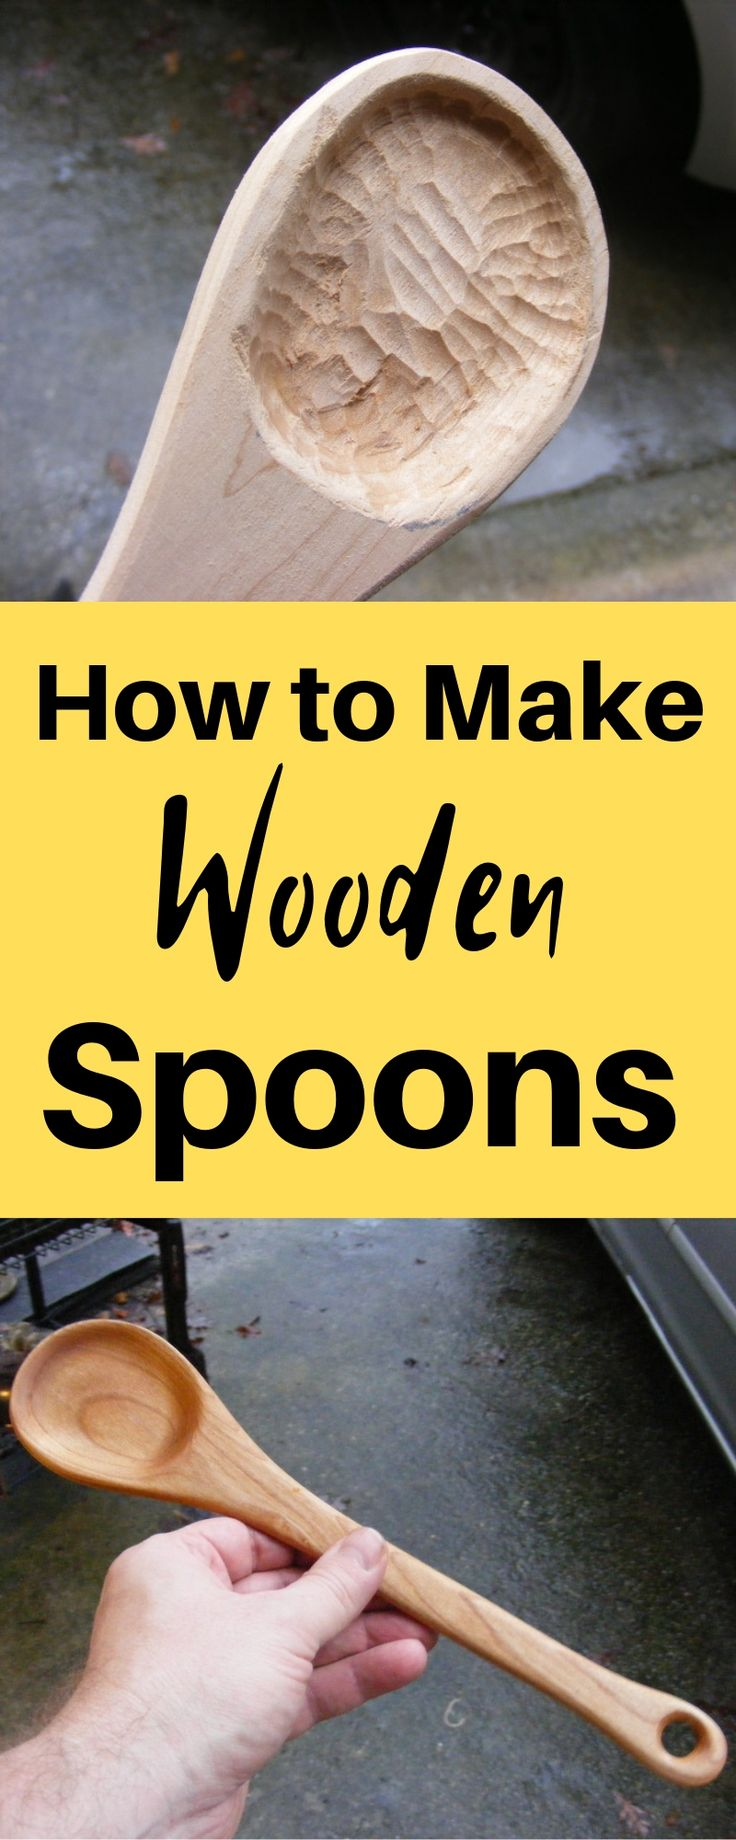 DIY Woodworking Ideas How to Make Wooden Spoons